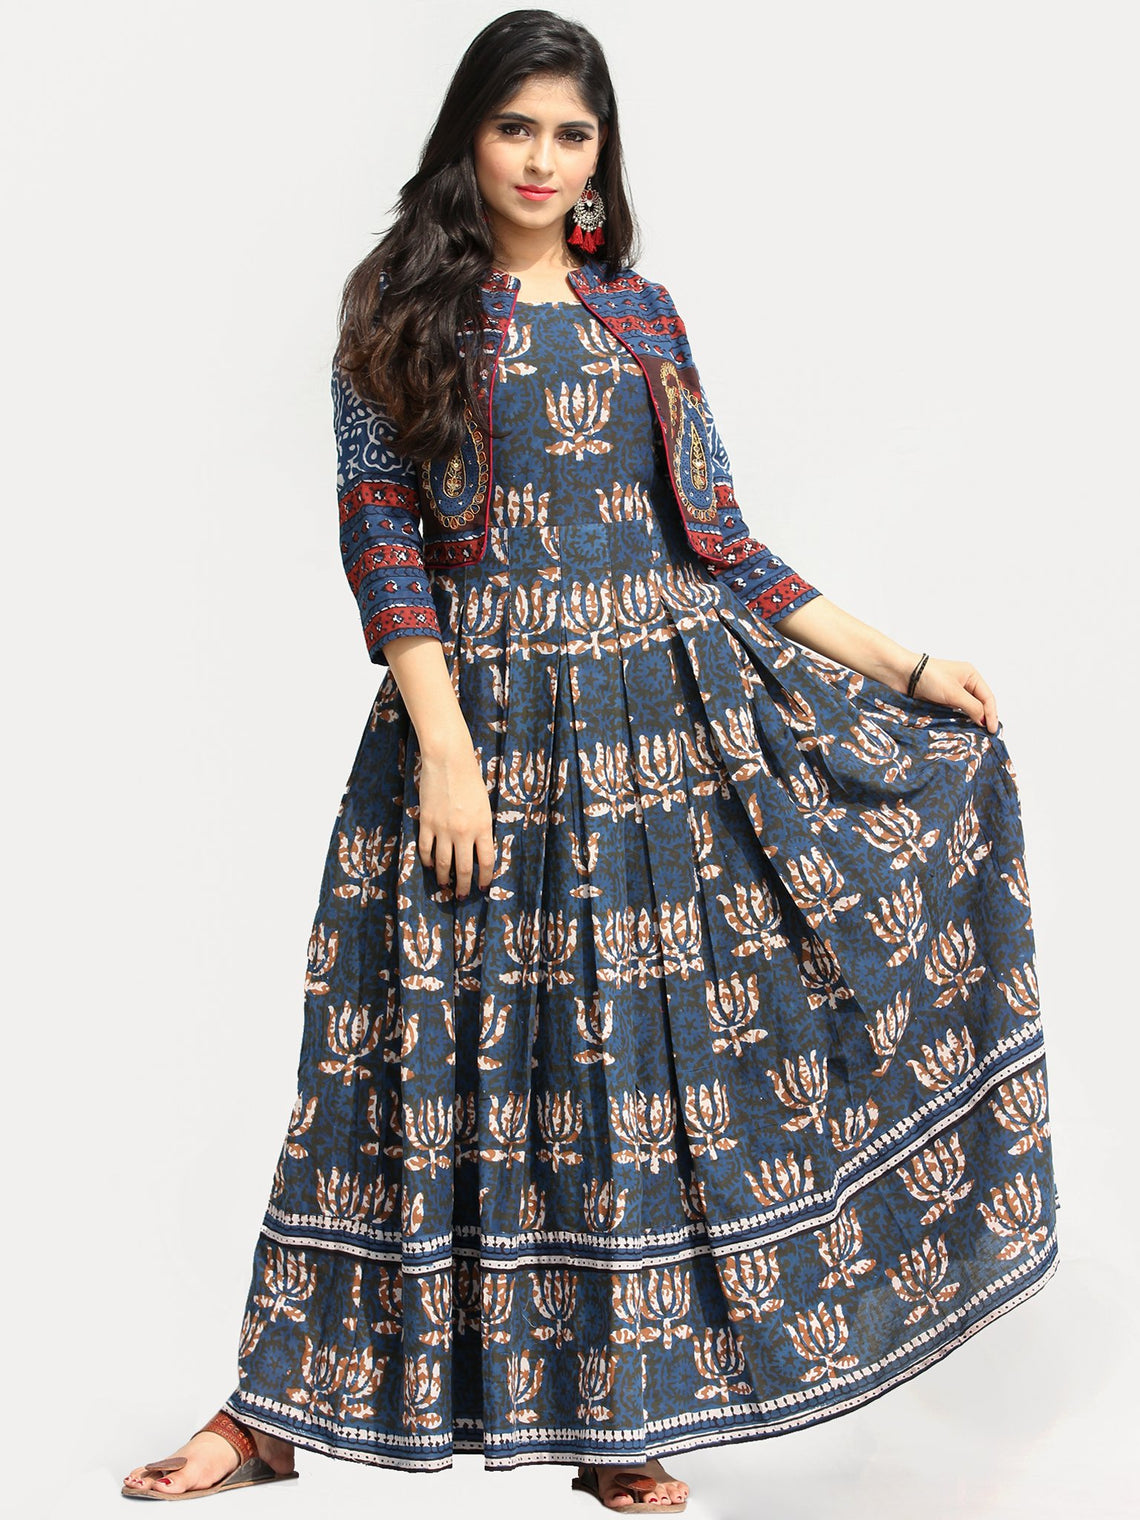 Roheen - Hand Block Printed Long Cotton Box Pleated Embroidered Jacket Dress - DS98F003